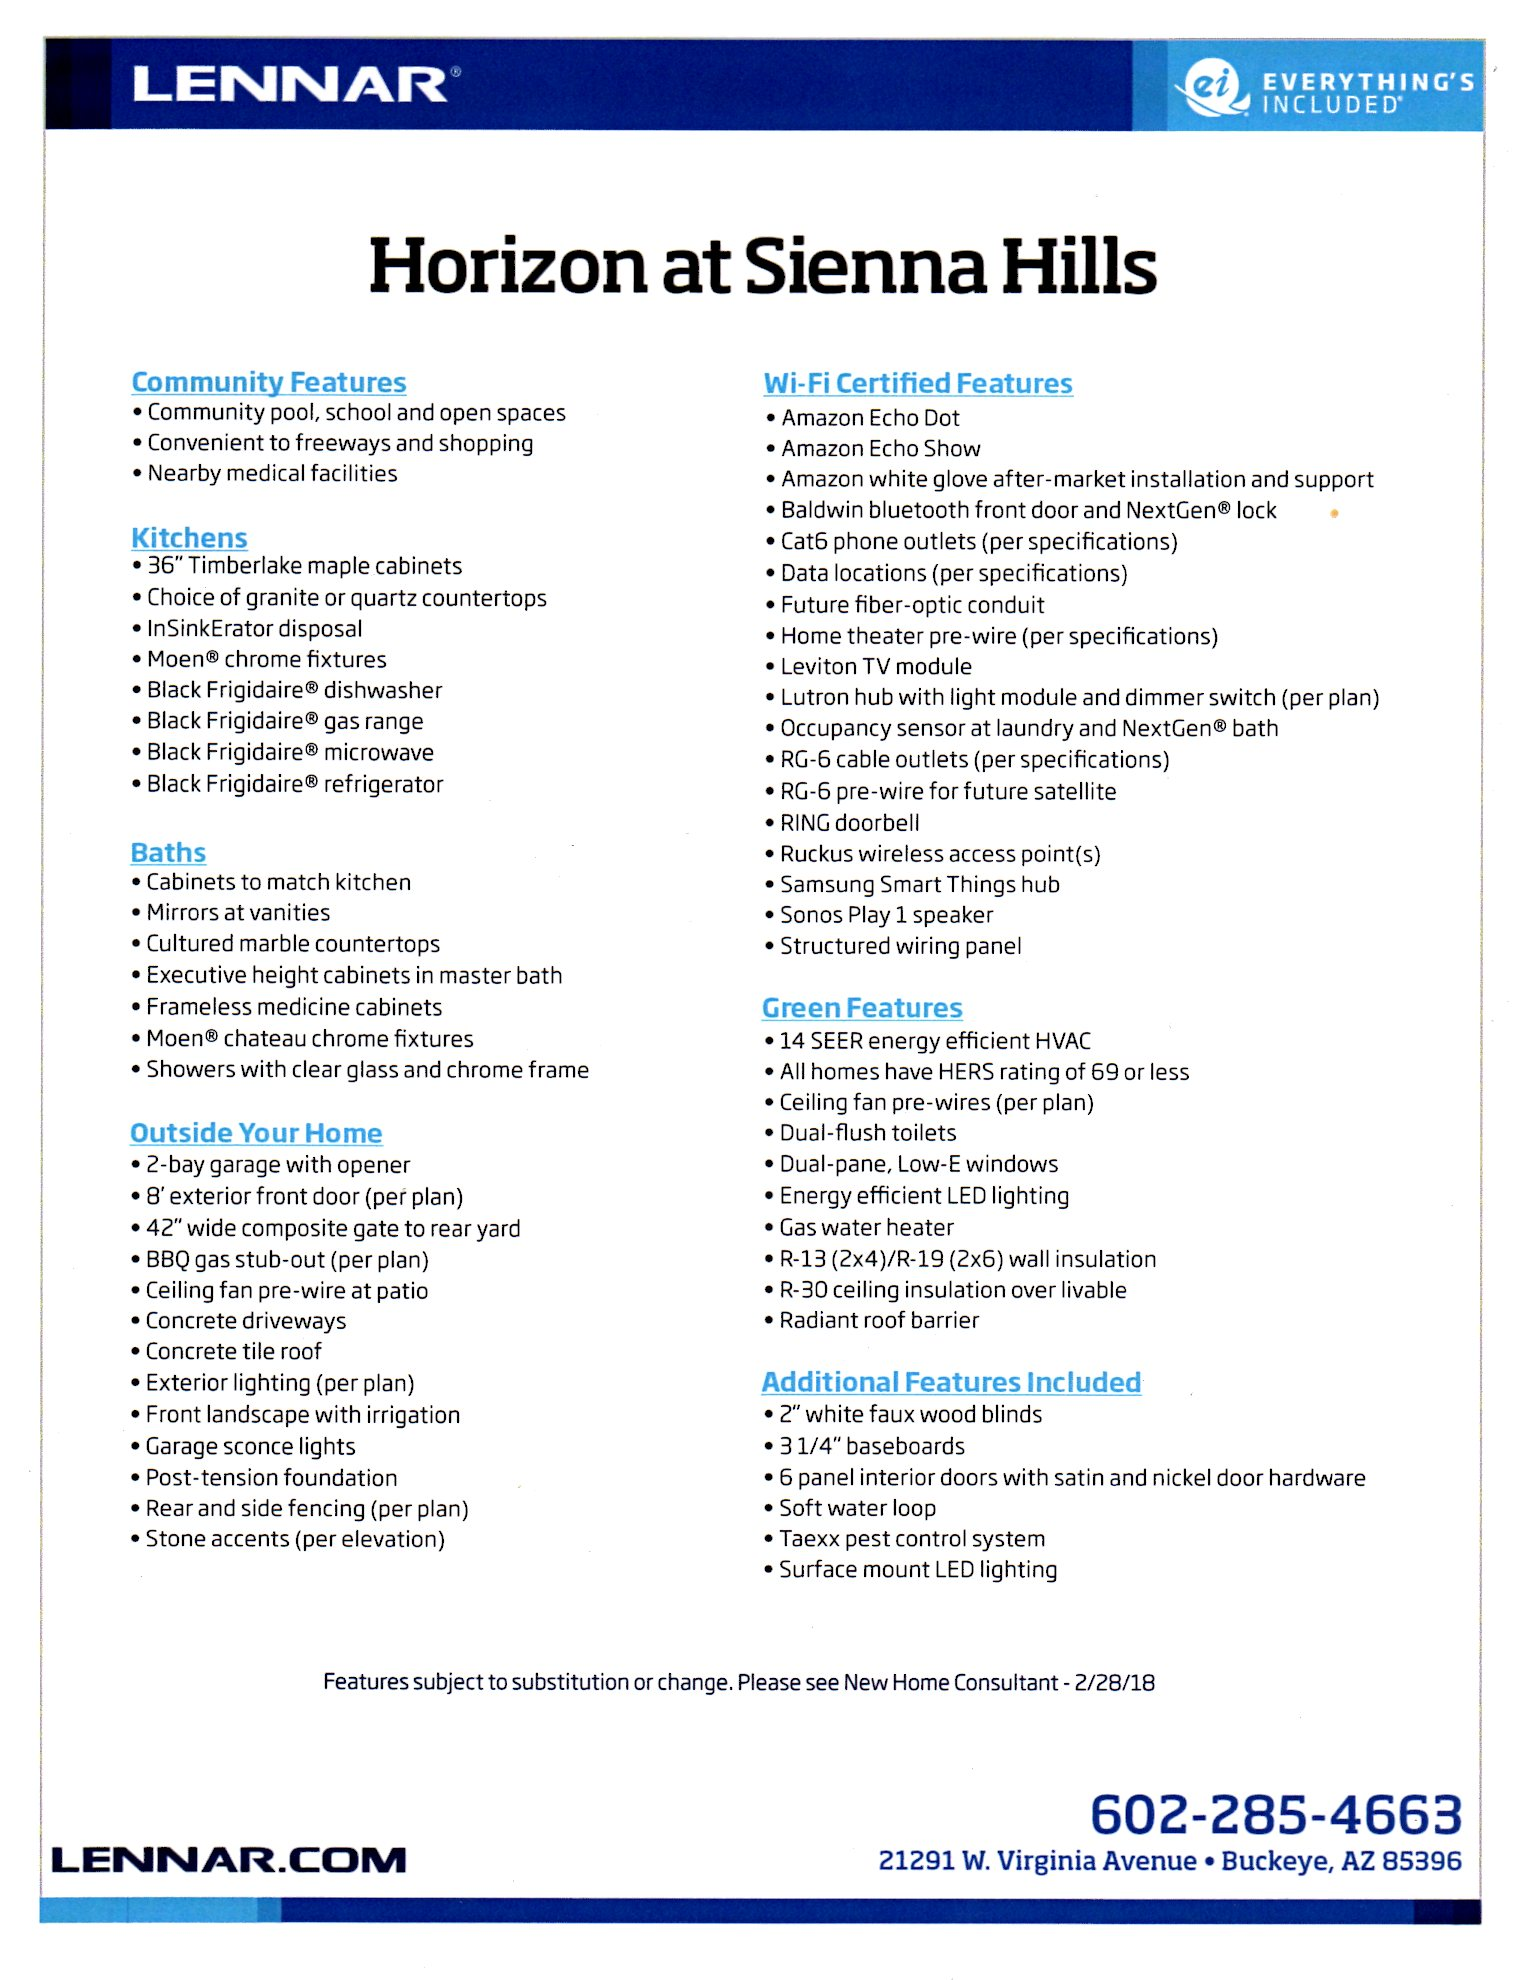 STANDARD FEATURES INCLUDED BY LENNAR at HORIZON